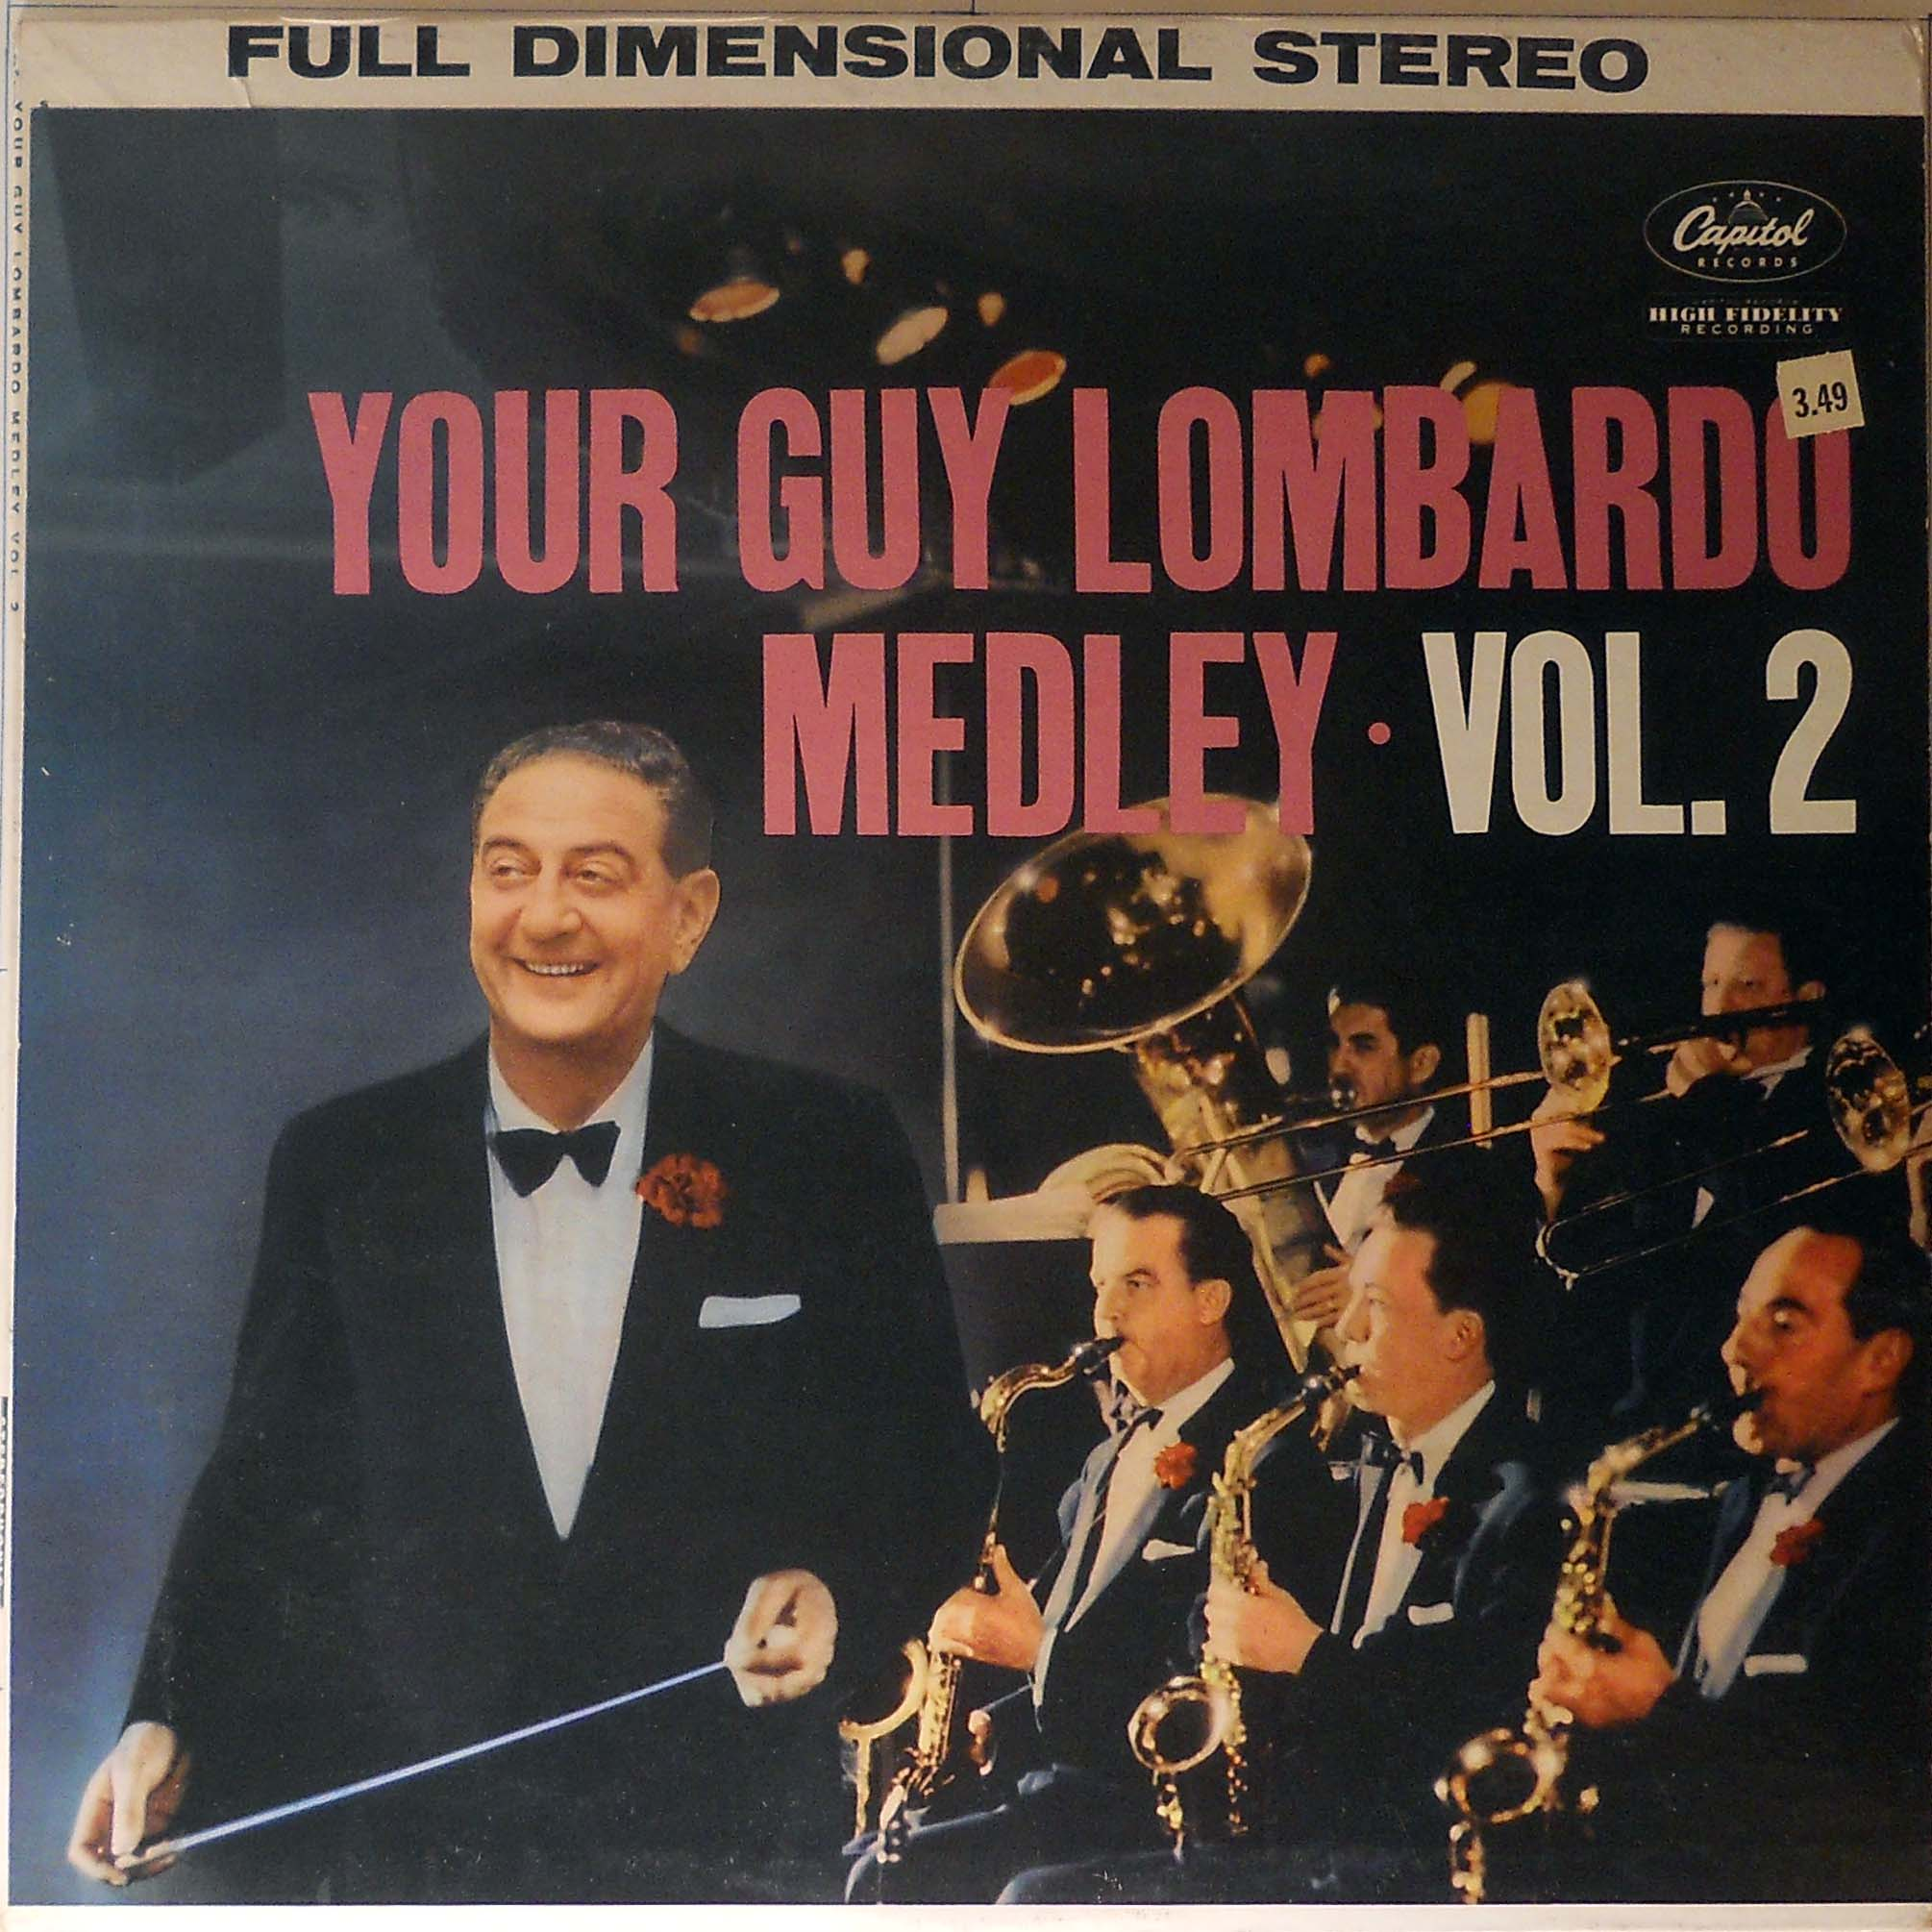 Guy Lombardo - Your Guy Lombado Medley Vol. 2